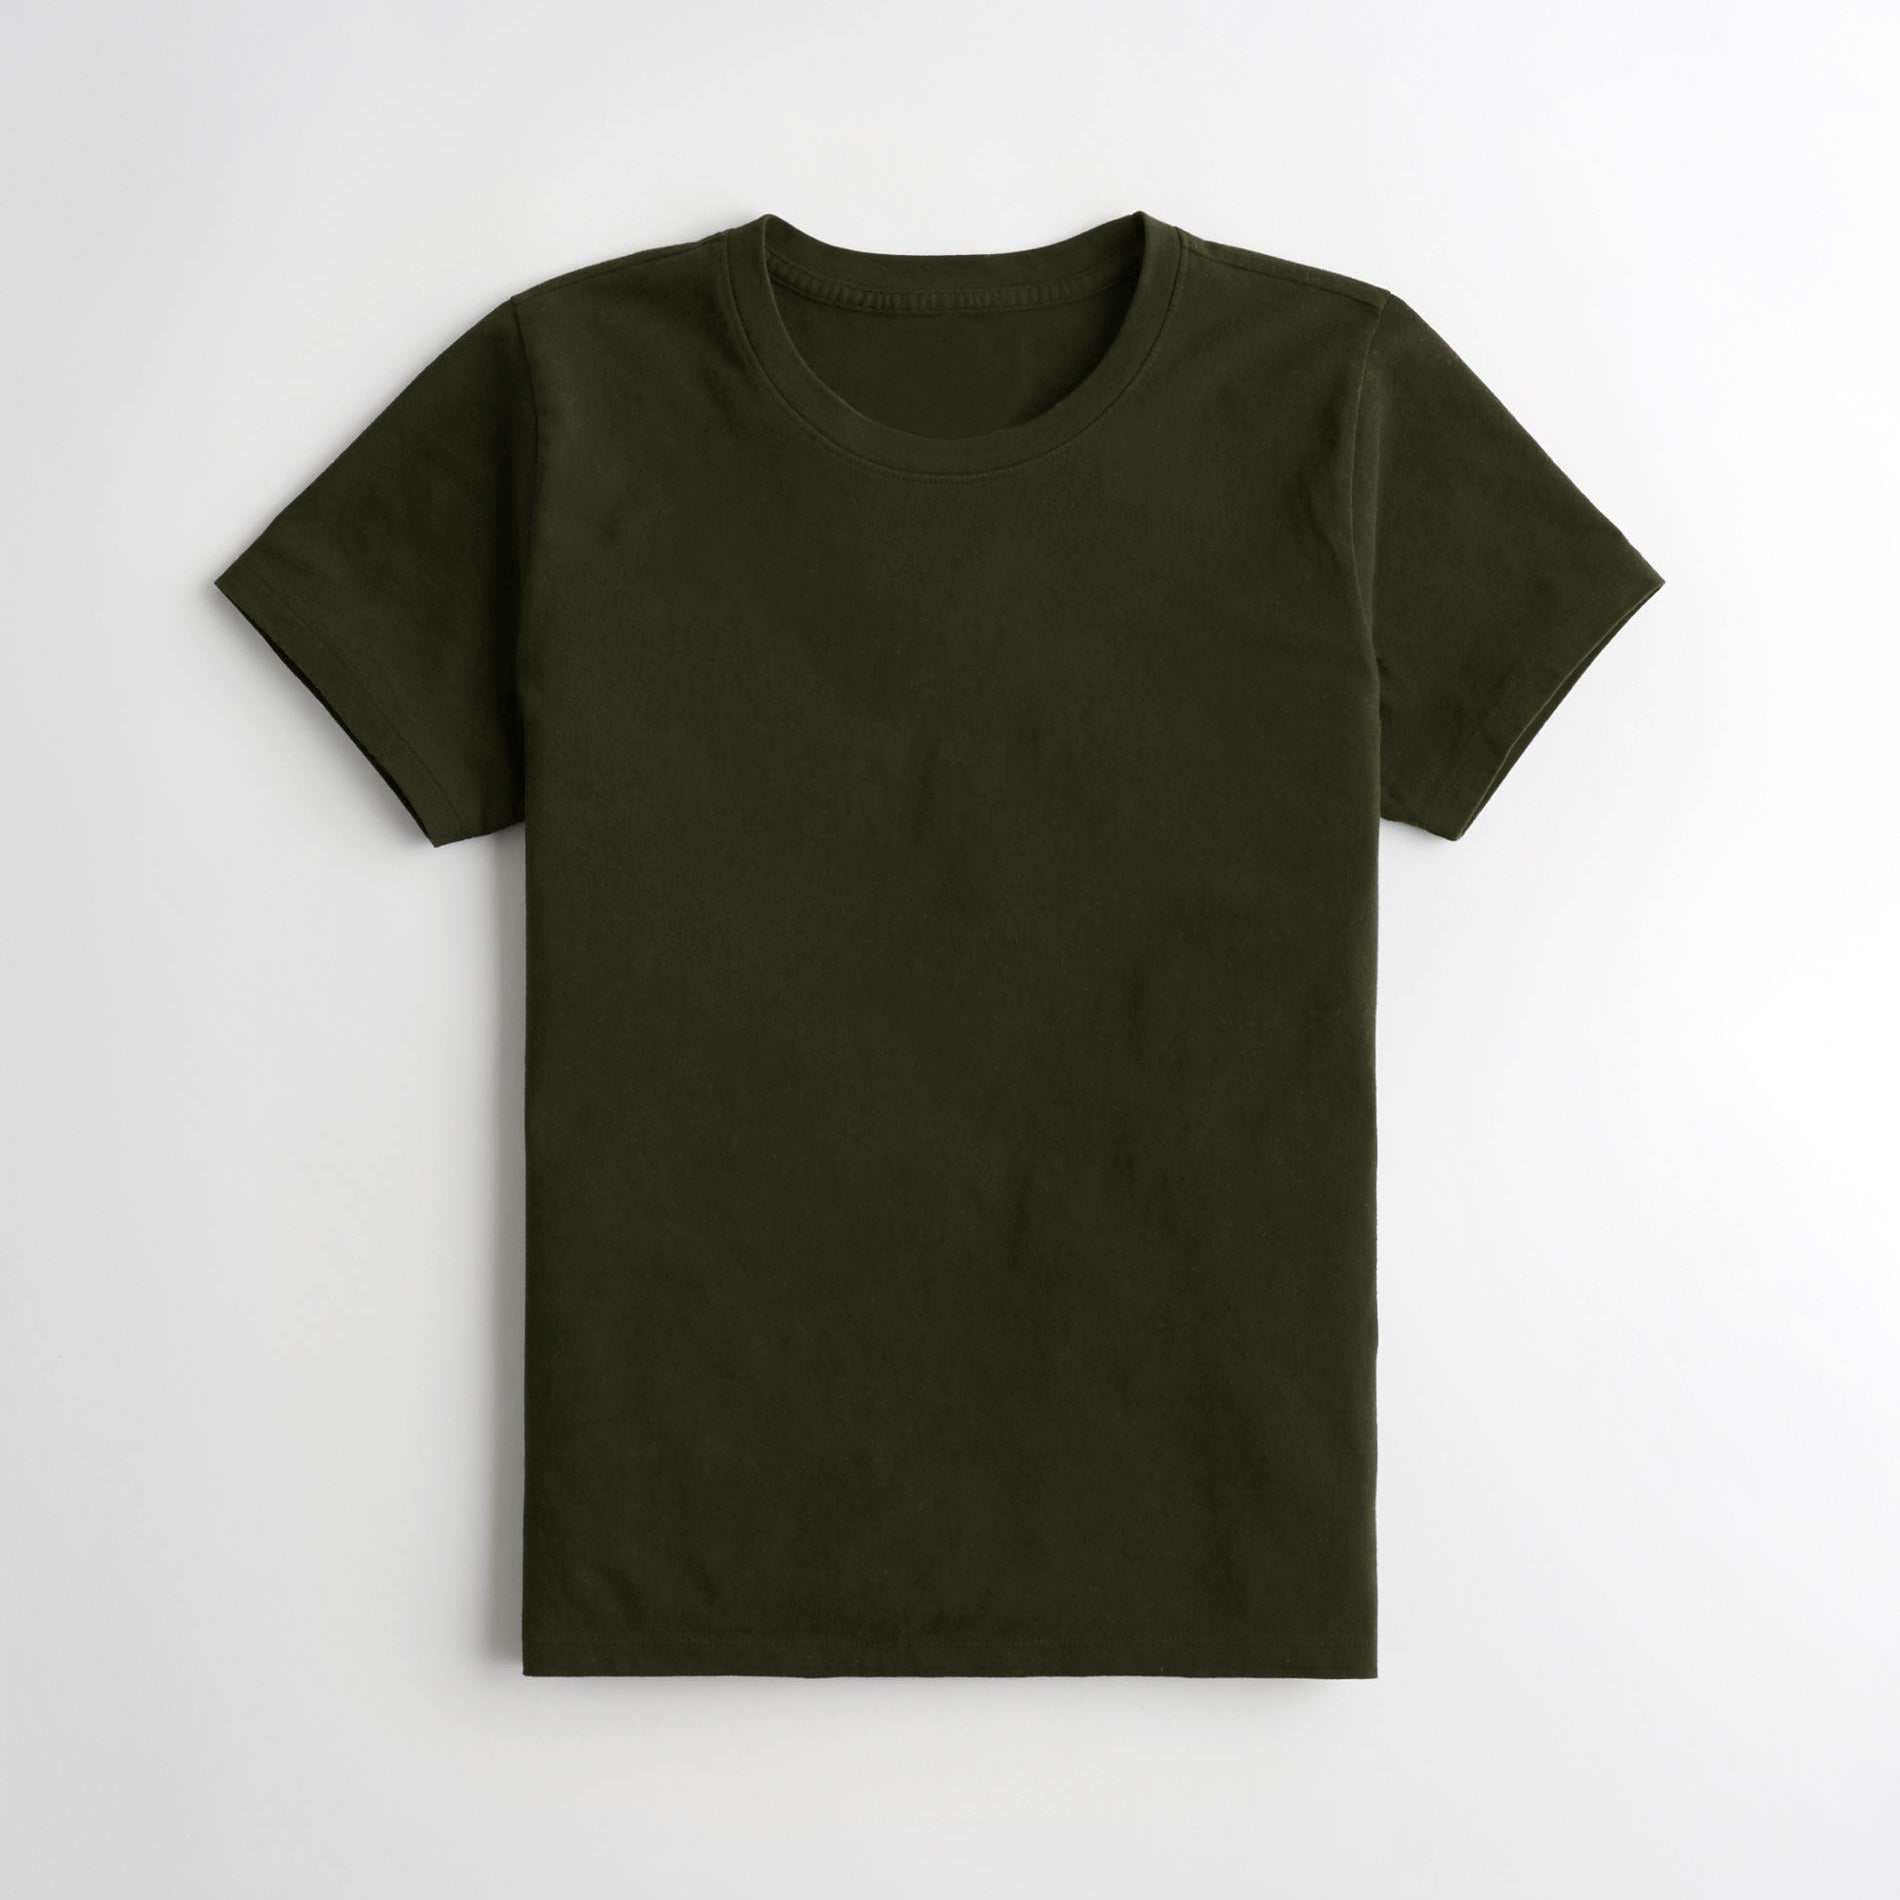 Popular Sports Half Sleeve Crew Neck Tee Shirt For Women-Green-NA10997